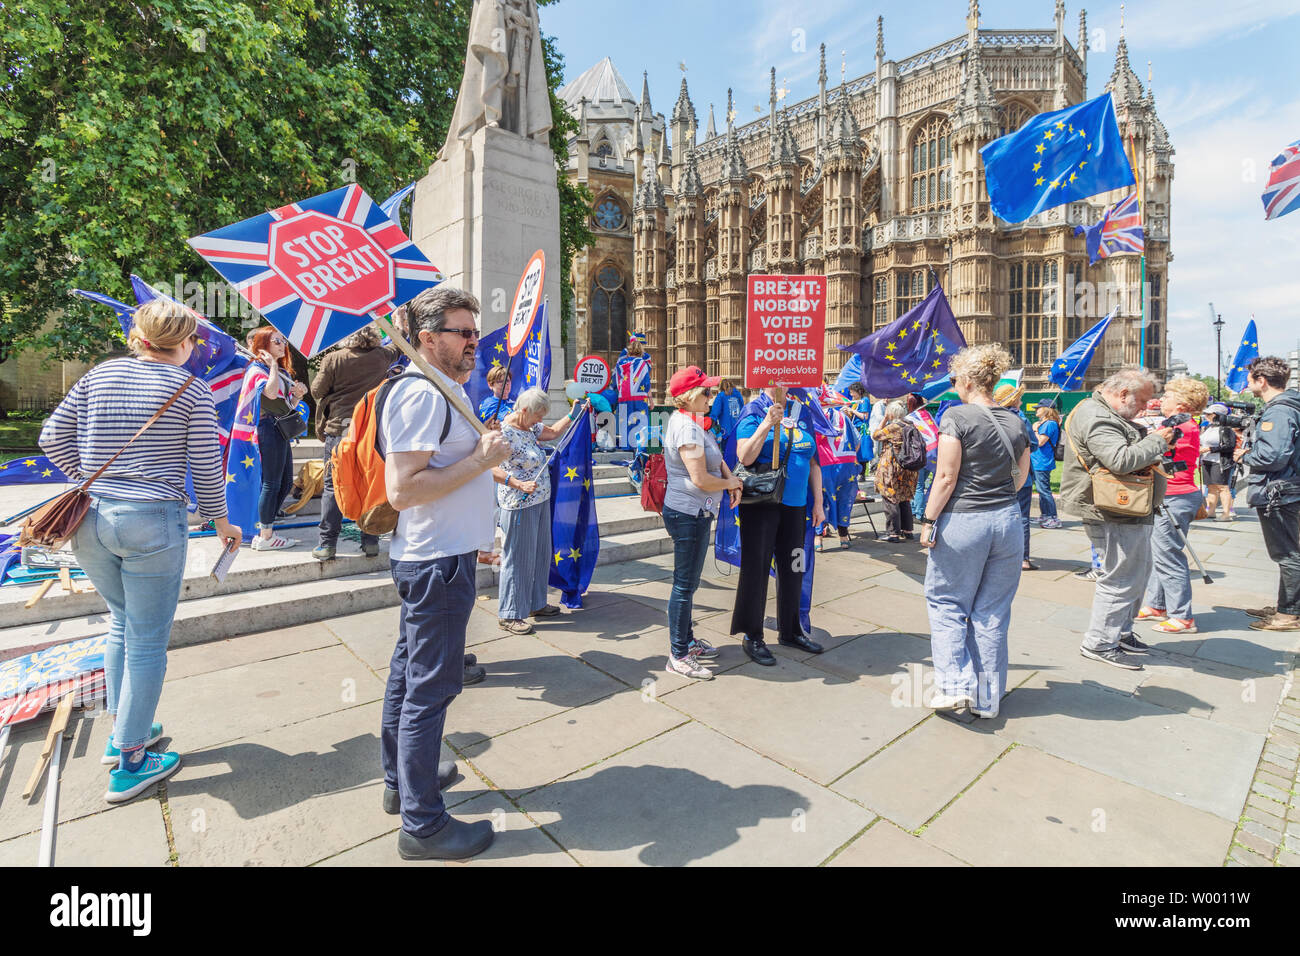 London / UK - June 26th 2019 - Pro-EU anti-Brexit protesters holding European Union flags and 'stop Brexit' signs opposite Parliament in Westminster - Stock Image